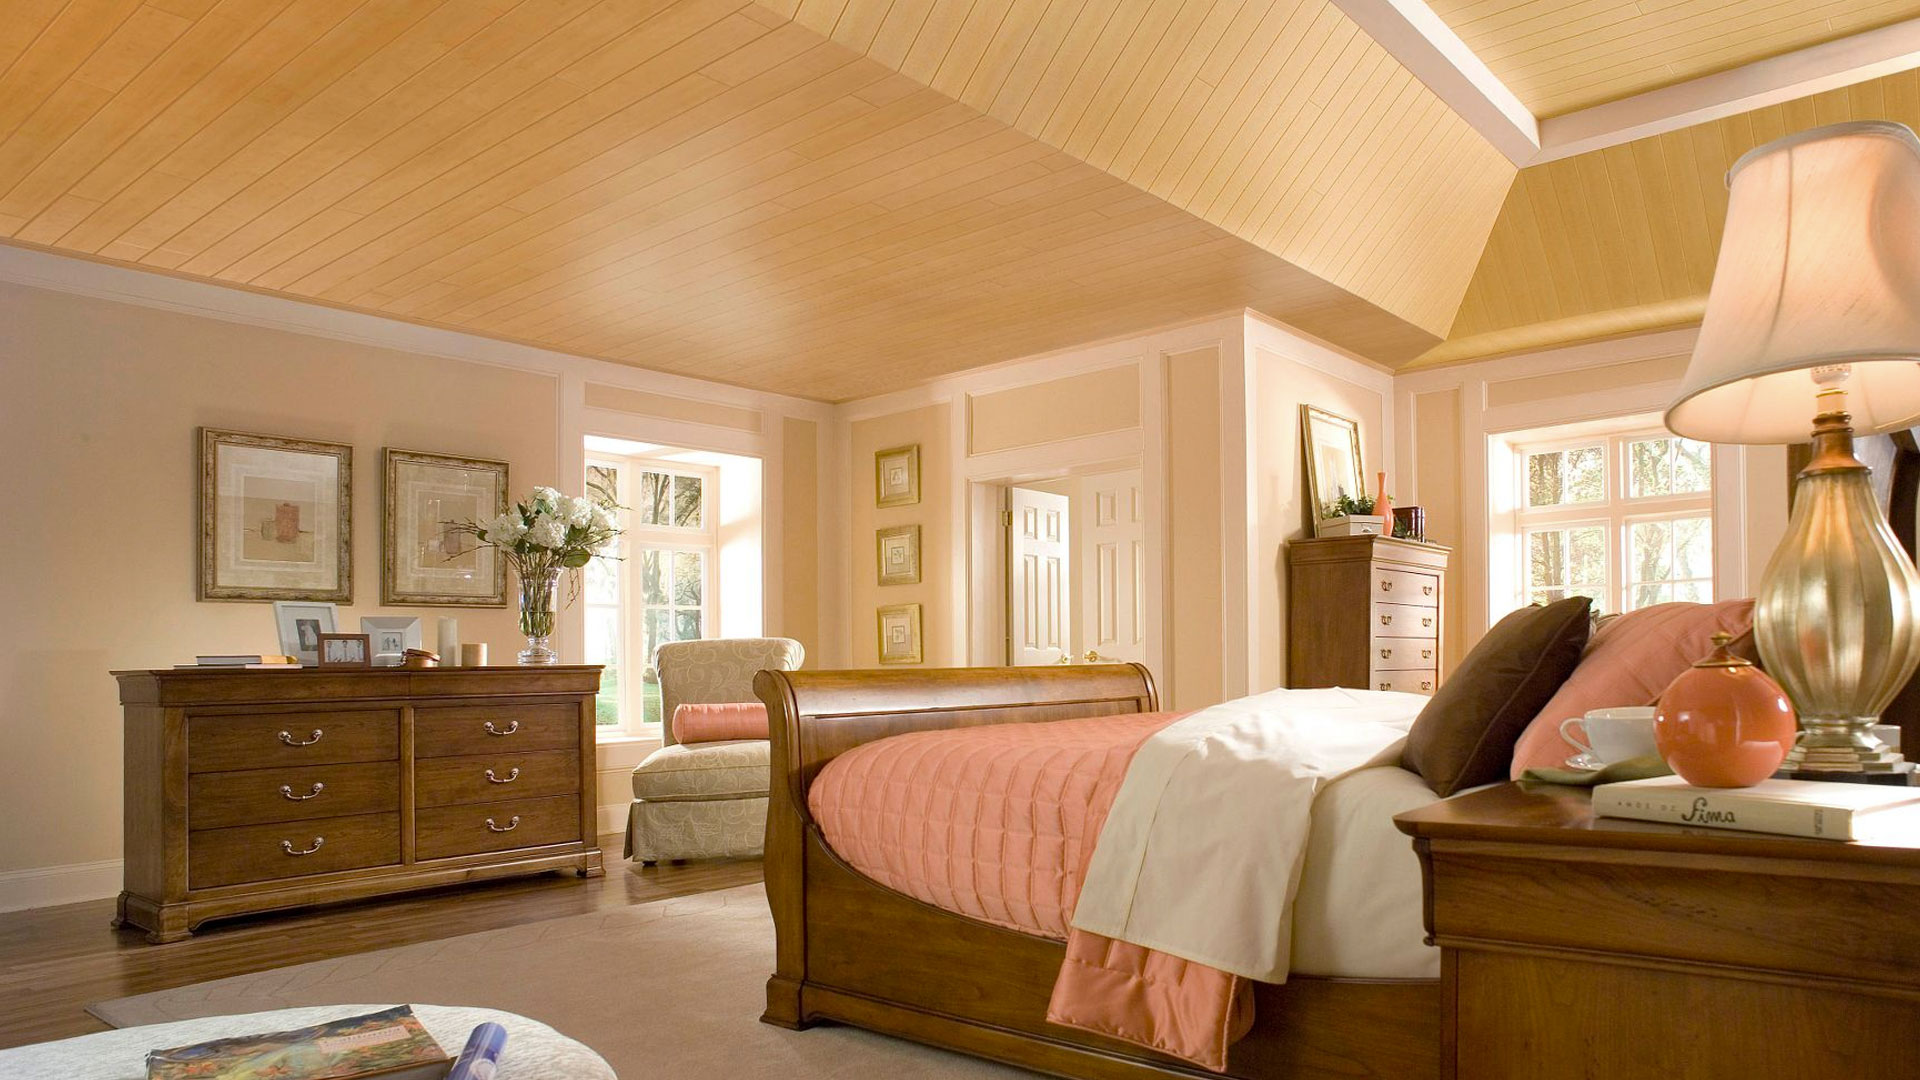 WoodHaven Ceiling Plank Installation Guide